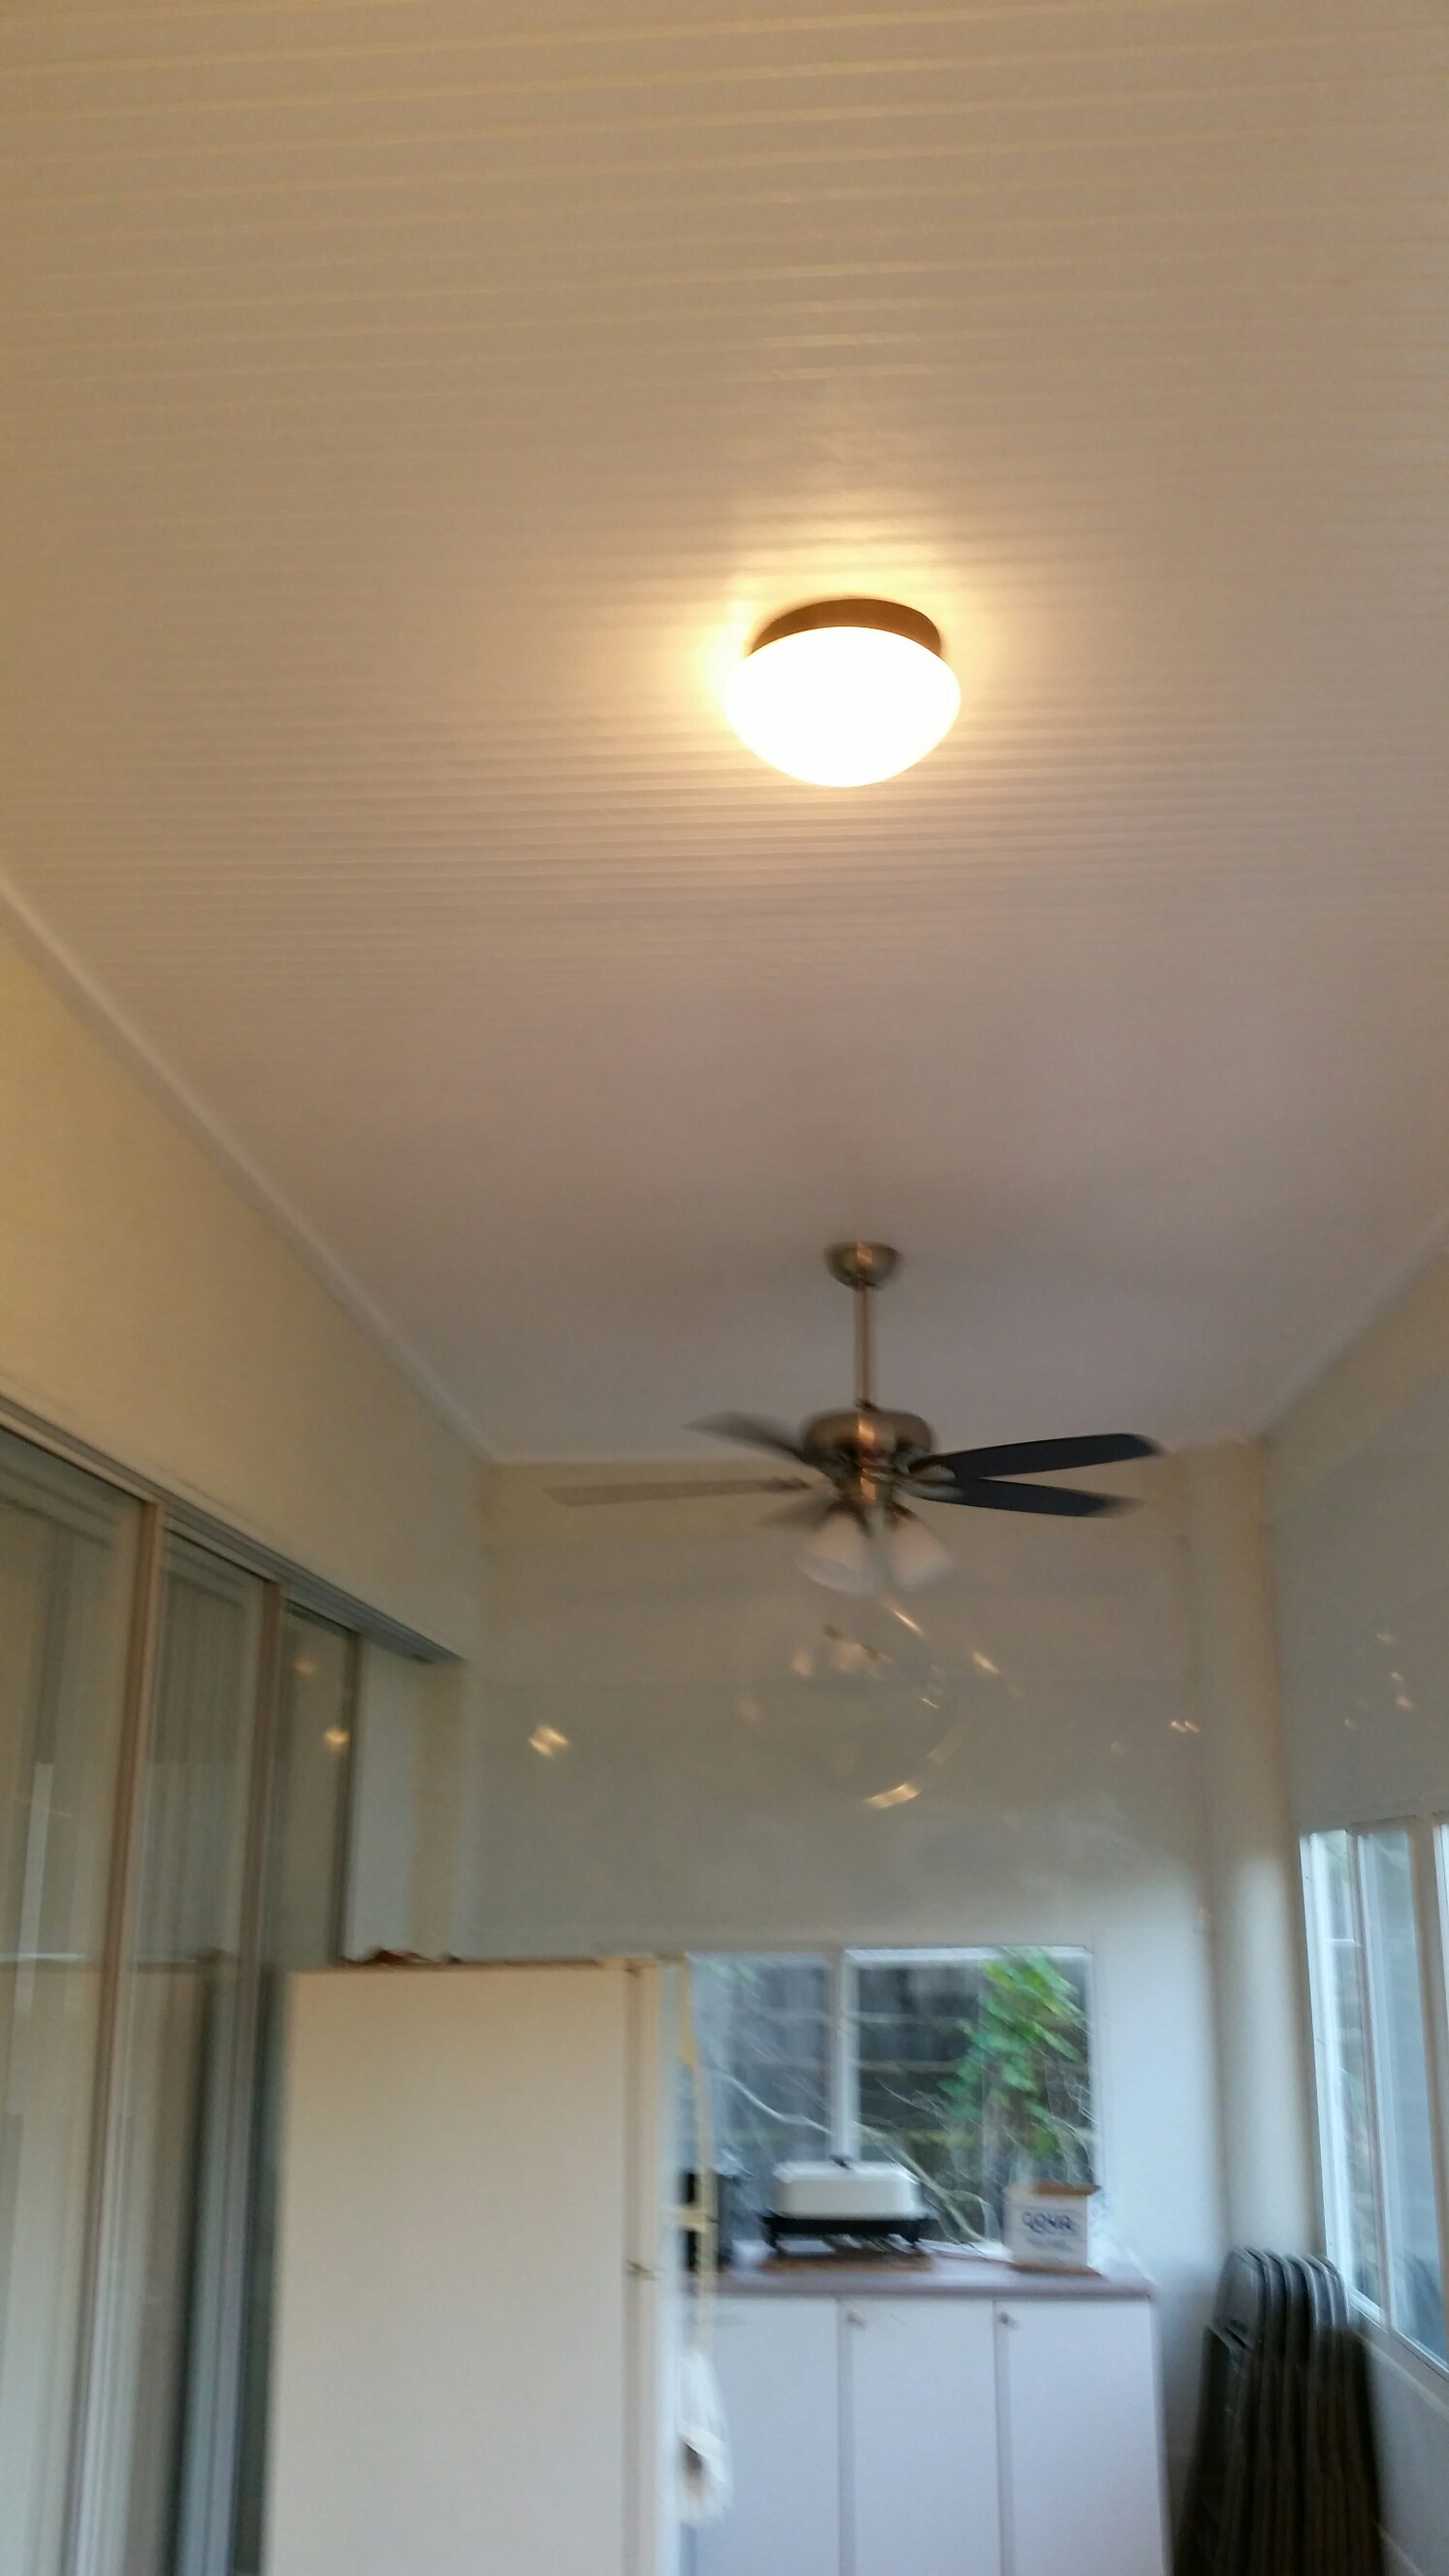 Ceiling Fan Install Wesley Chapel Florida Ewire Solutions Installing Wiring